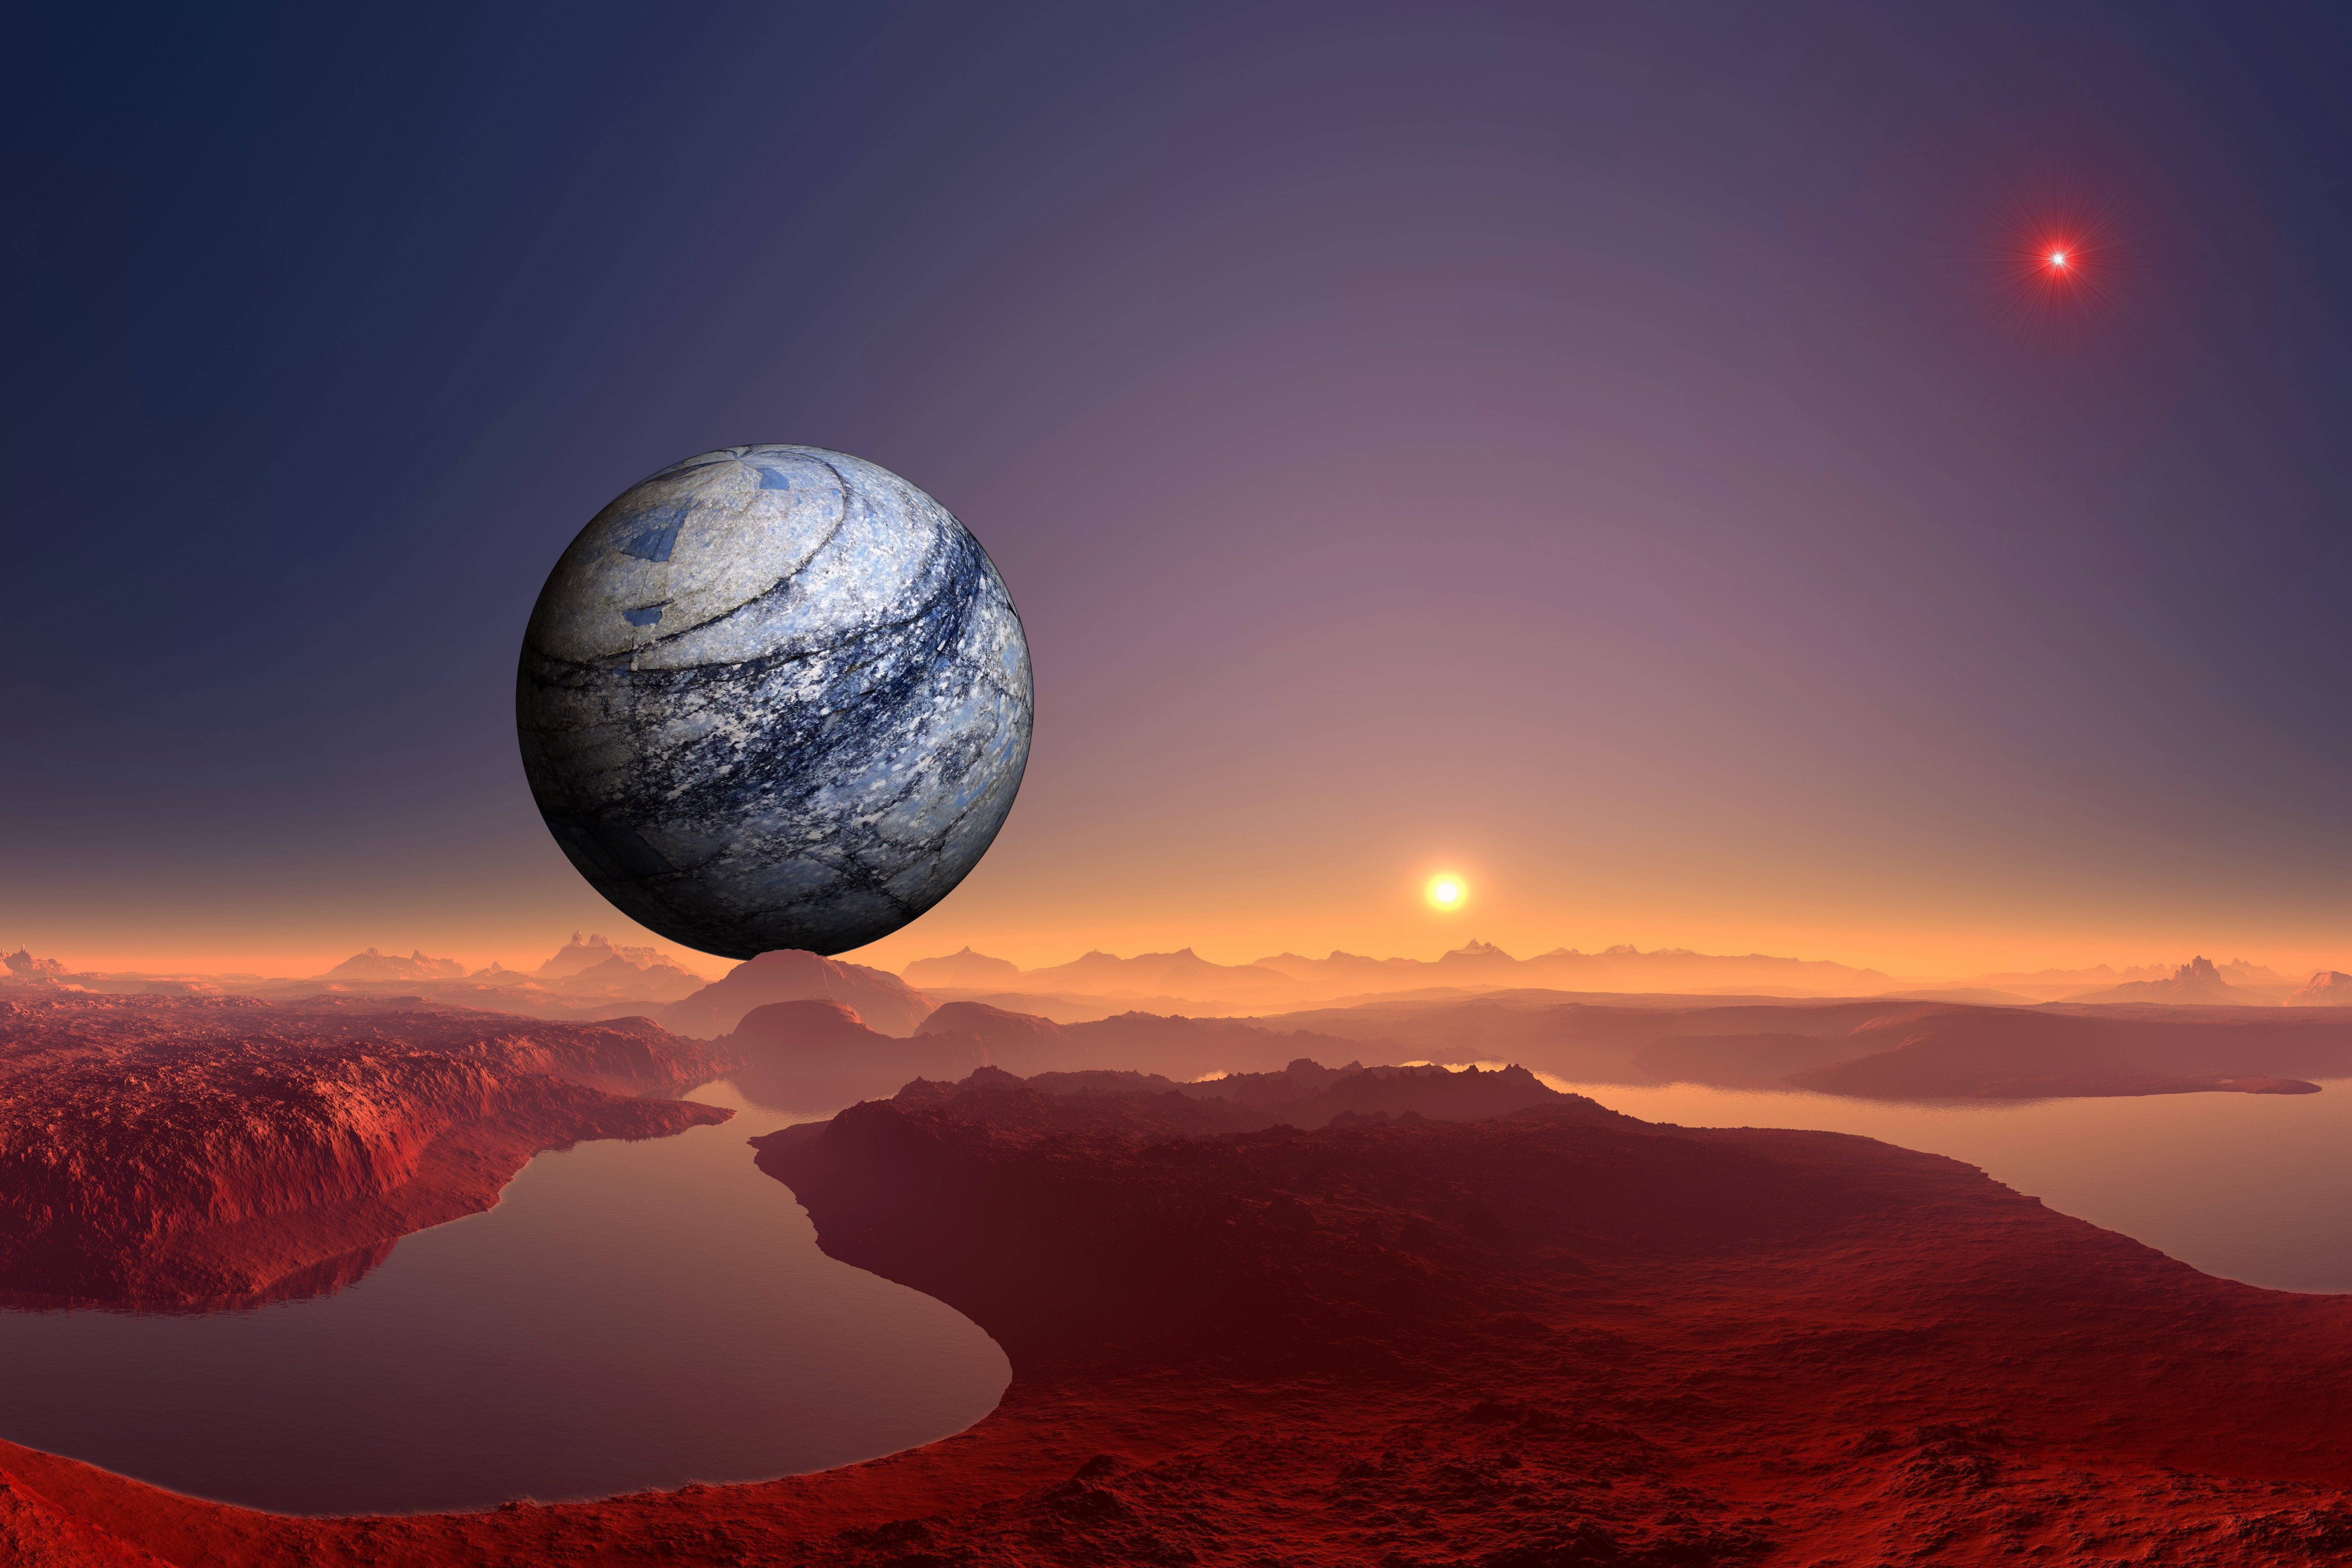 artistic wallpapers for mobile,nature,sky,atmosphere,planet,astronomical object